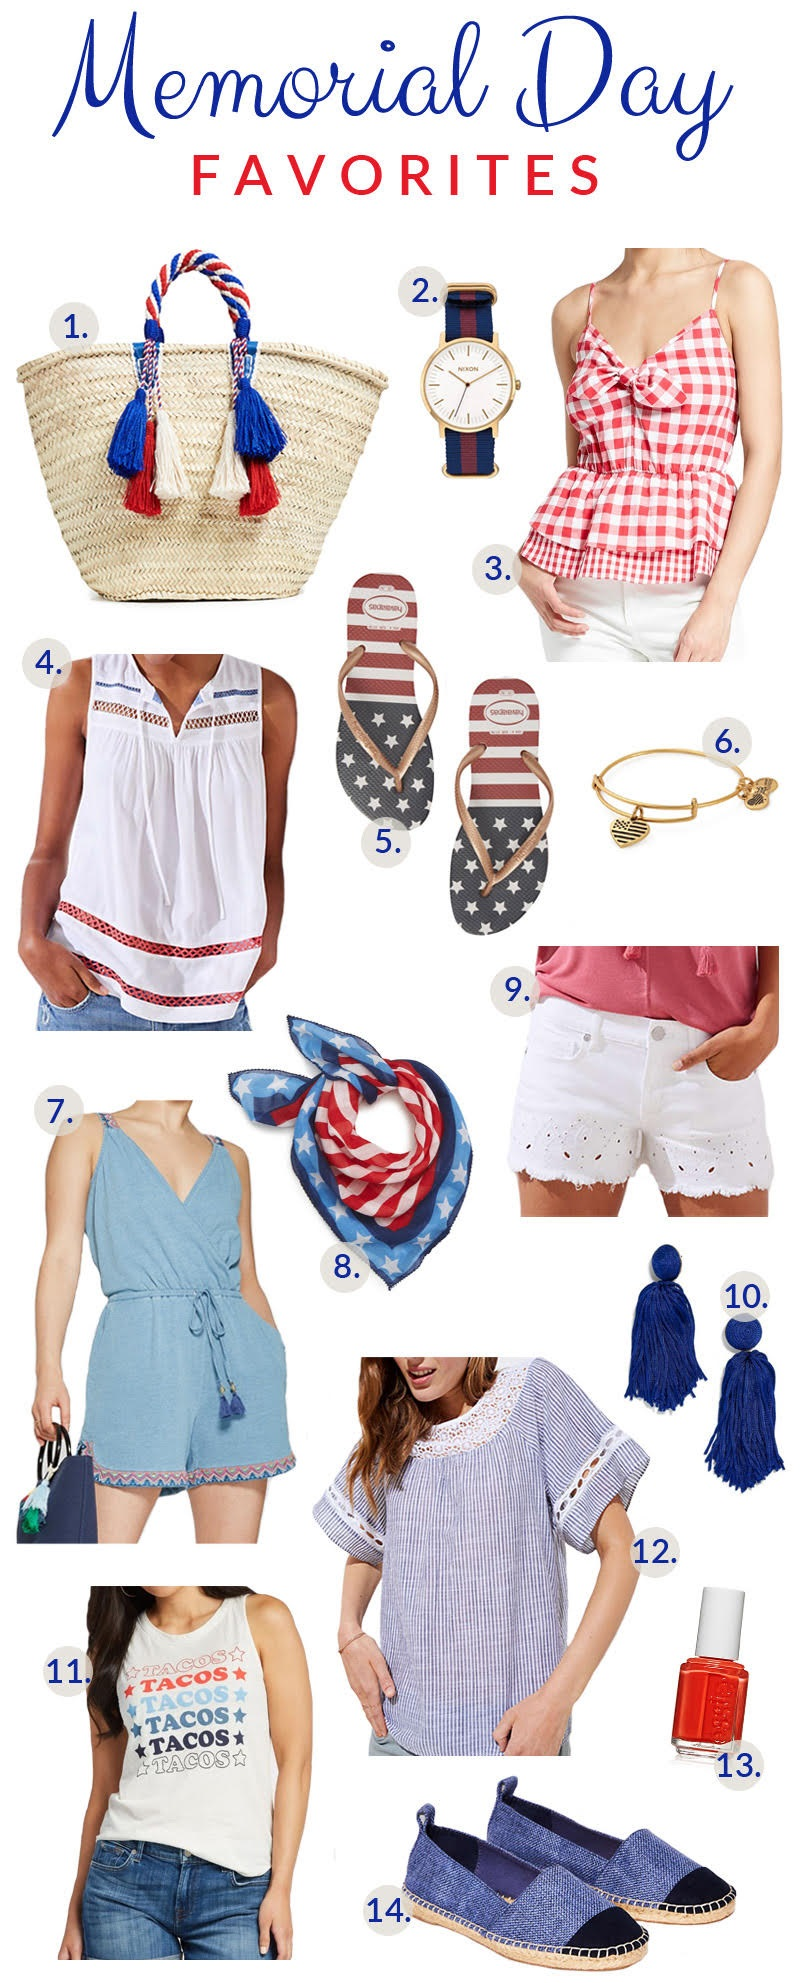 My Favorite Memorial Day Outfits